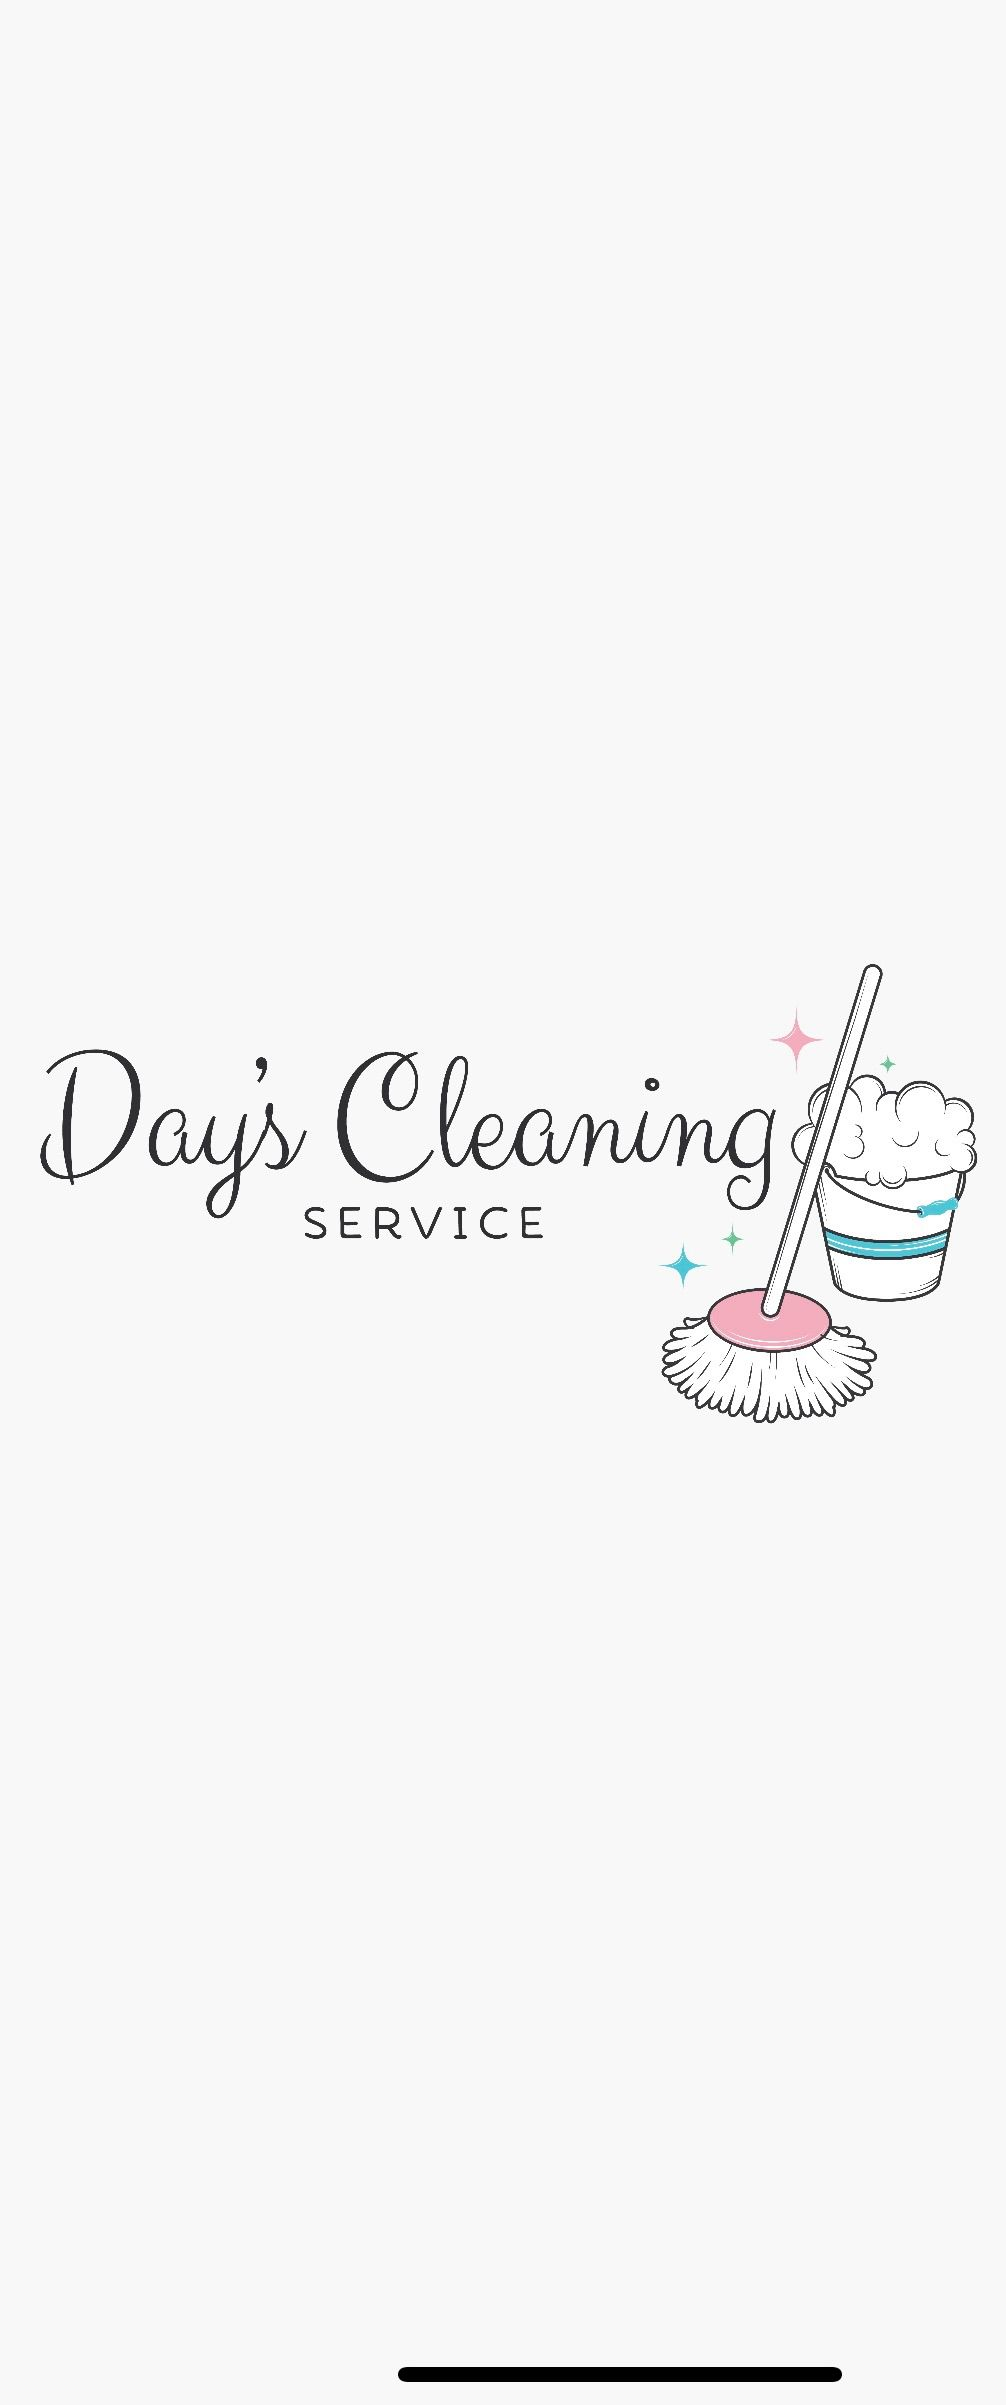 Day's Cleaning Service